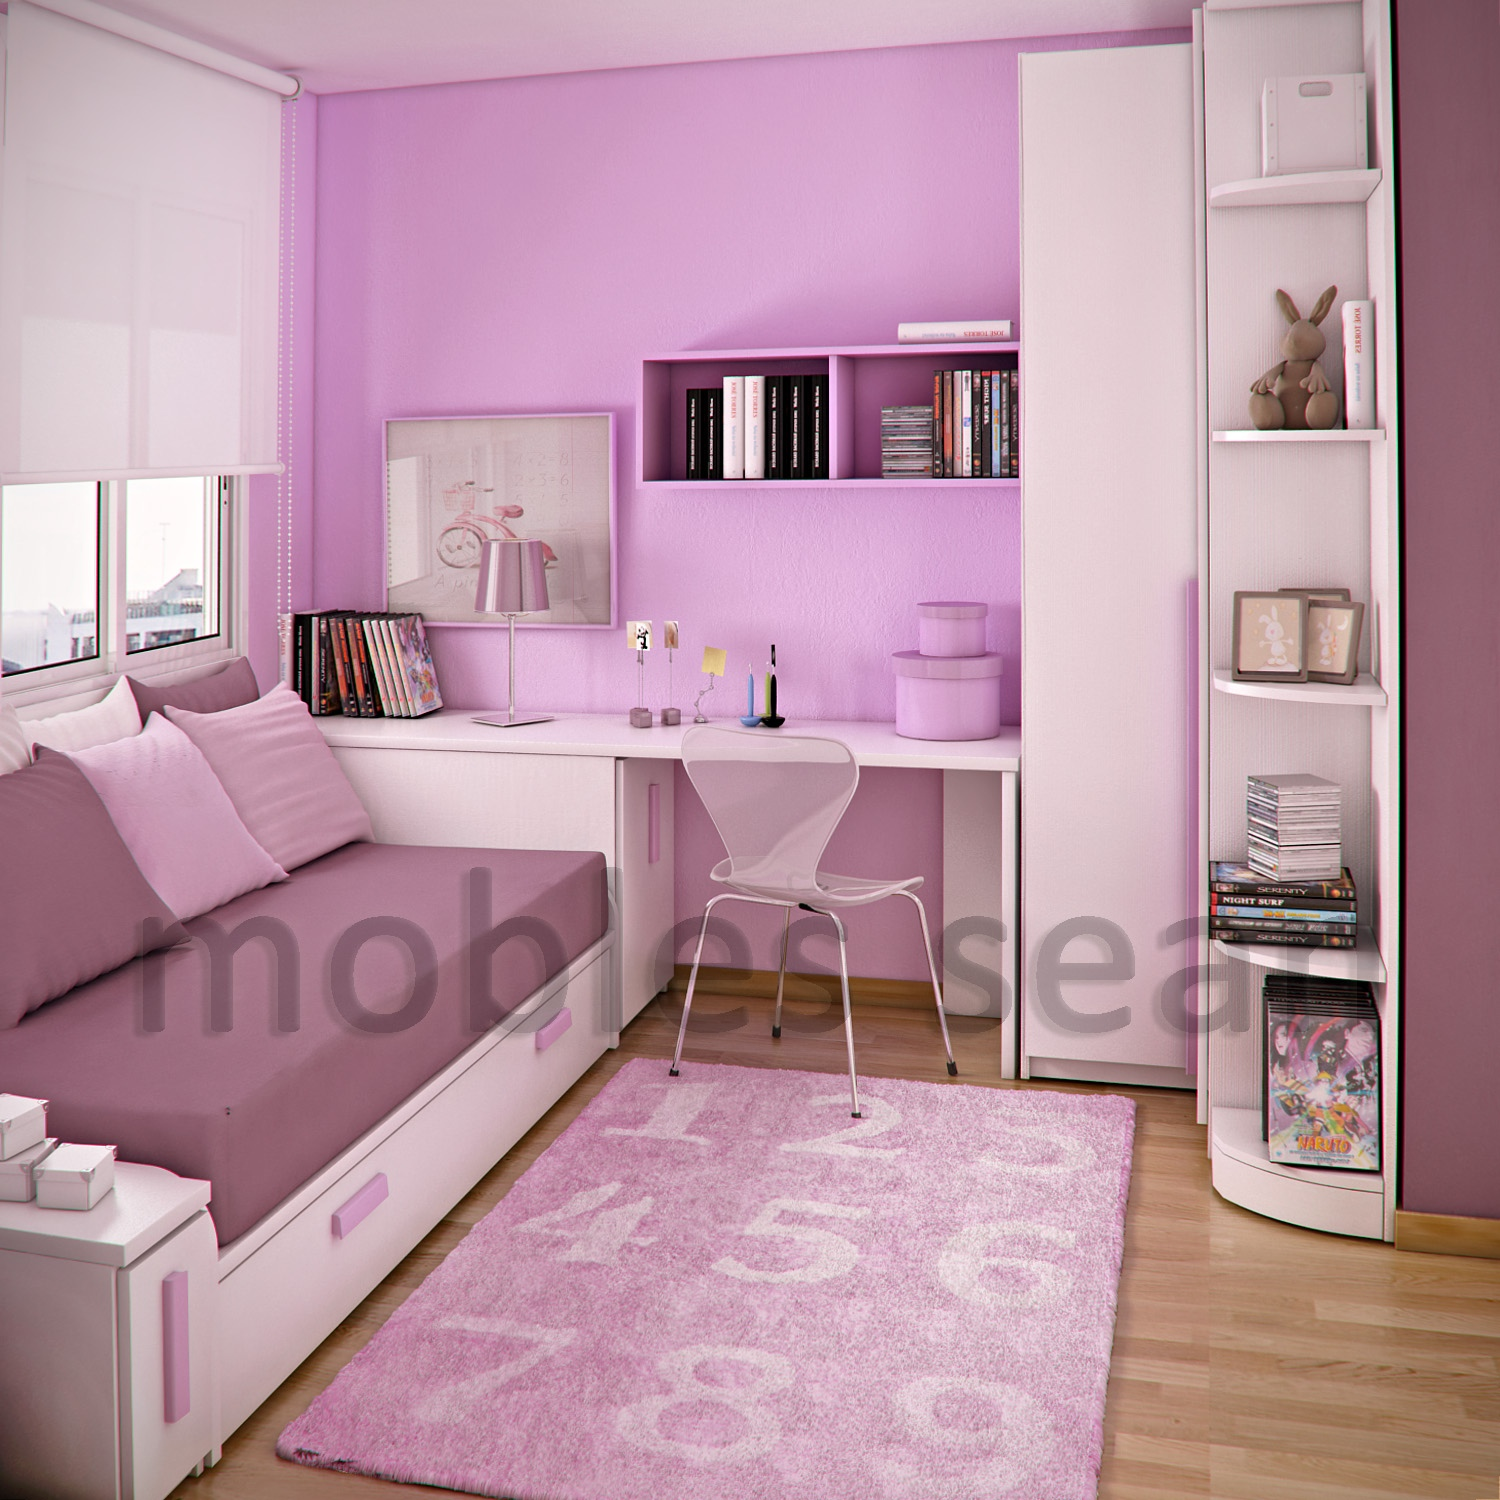 SpaceSaving Designs For Small Kids Rooms - Bedroom ideas for small rooms